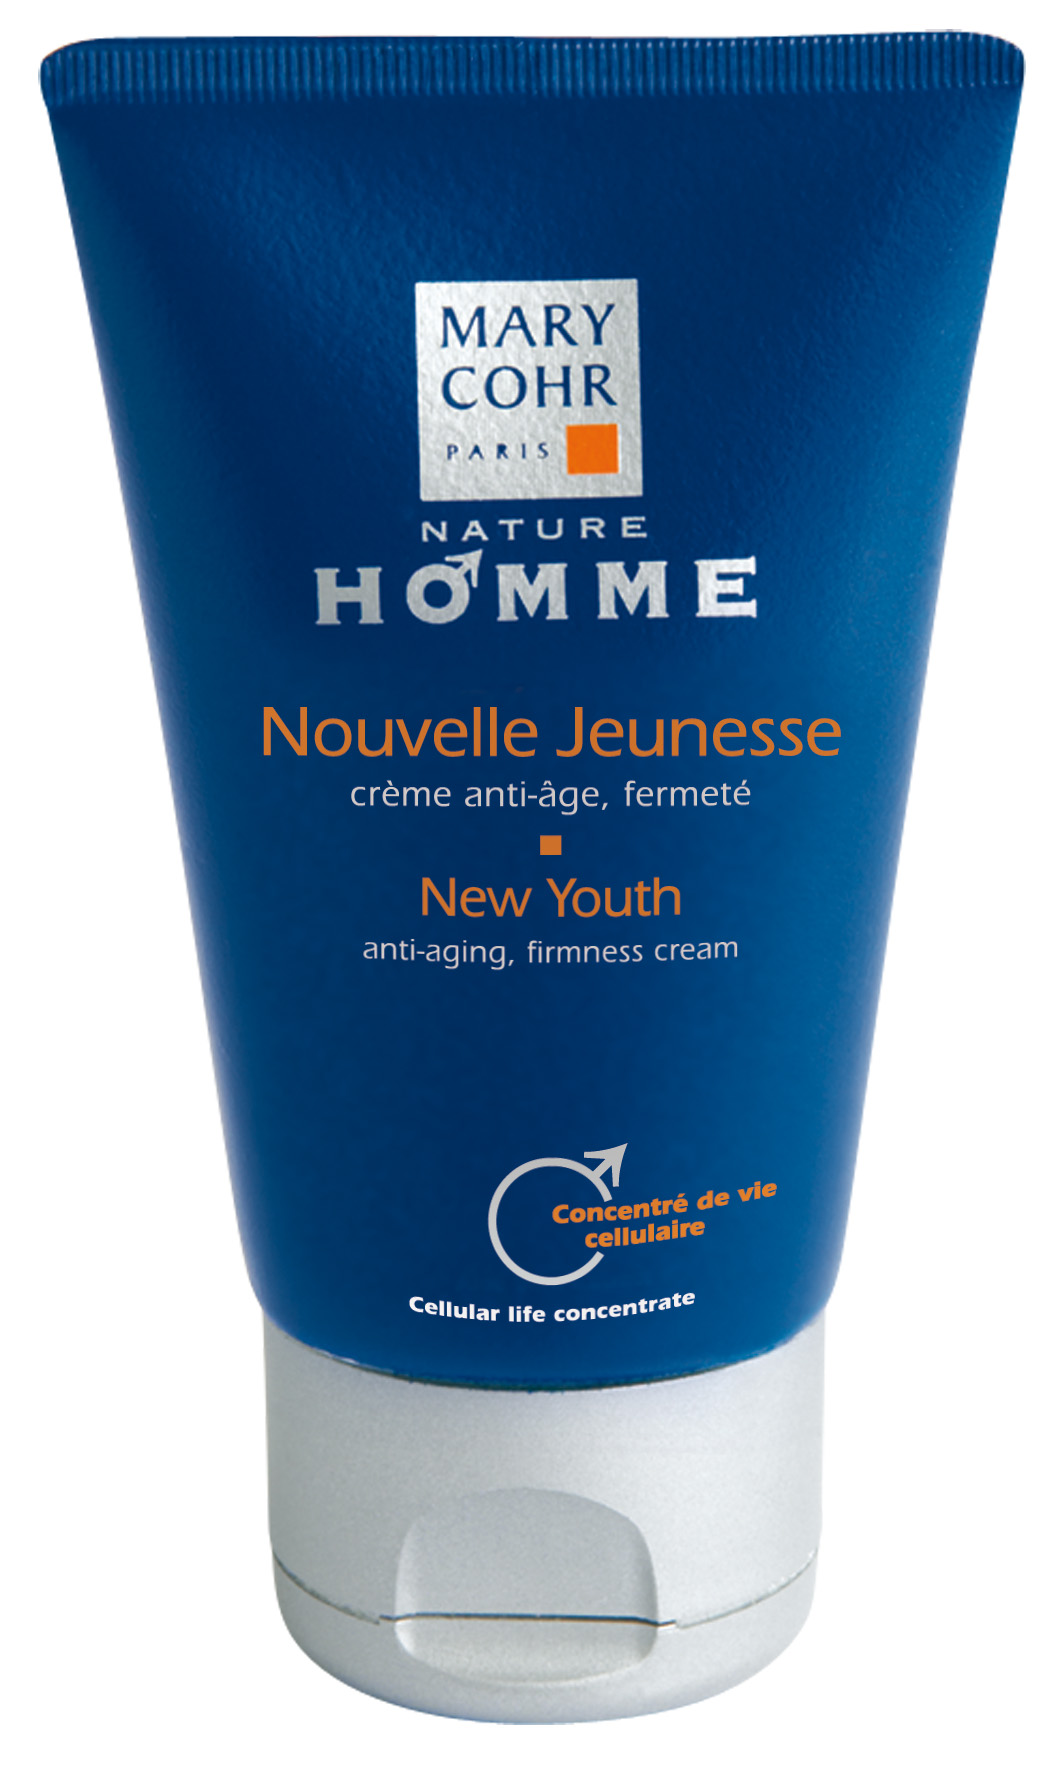 New Youth Homme From Mary Cohr